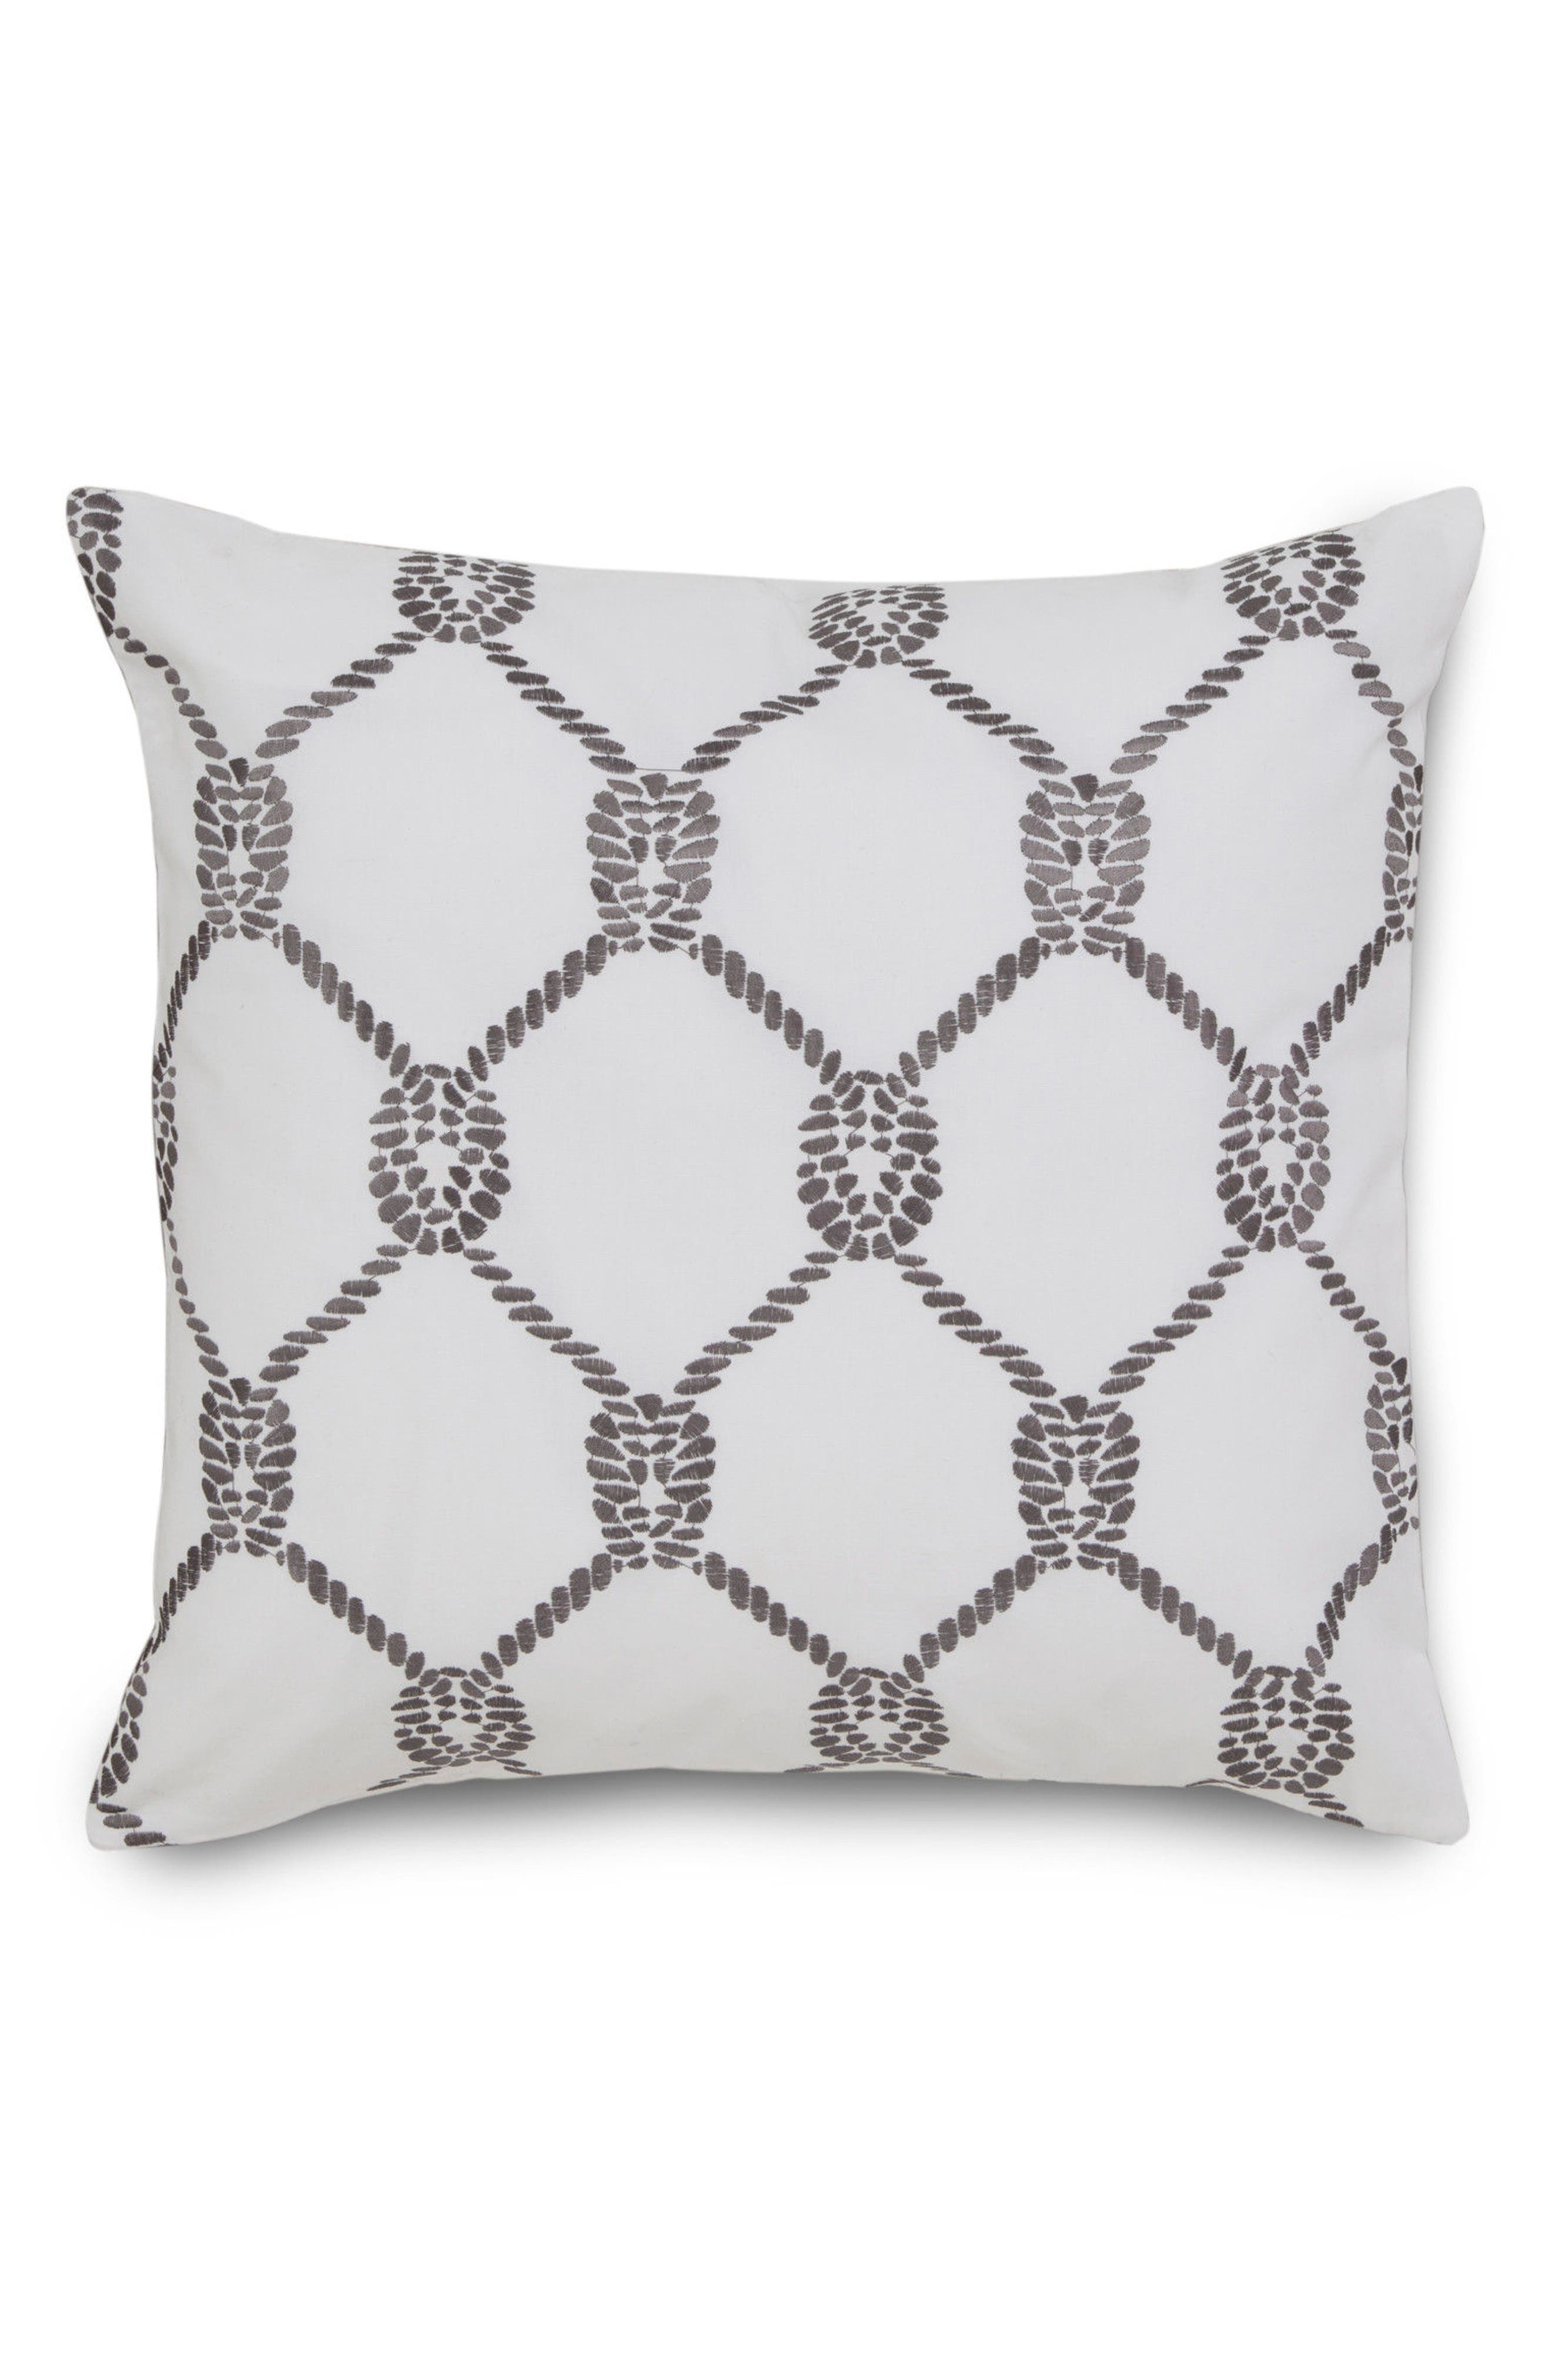 Breakwater Embroidered Rope Accent Pillow,                             Main thumbnail 1, color,                             Nautical Grey